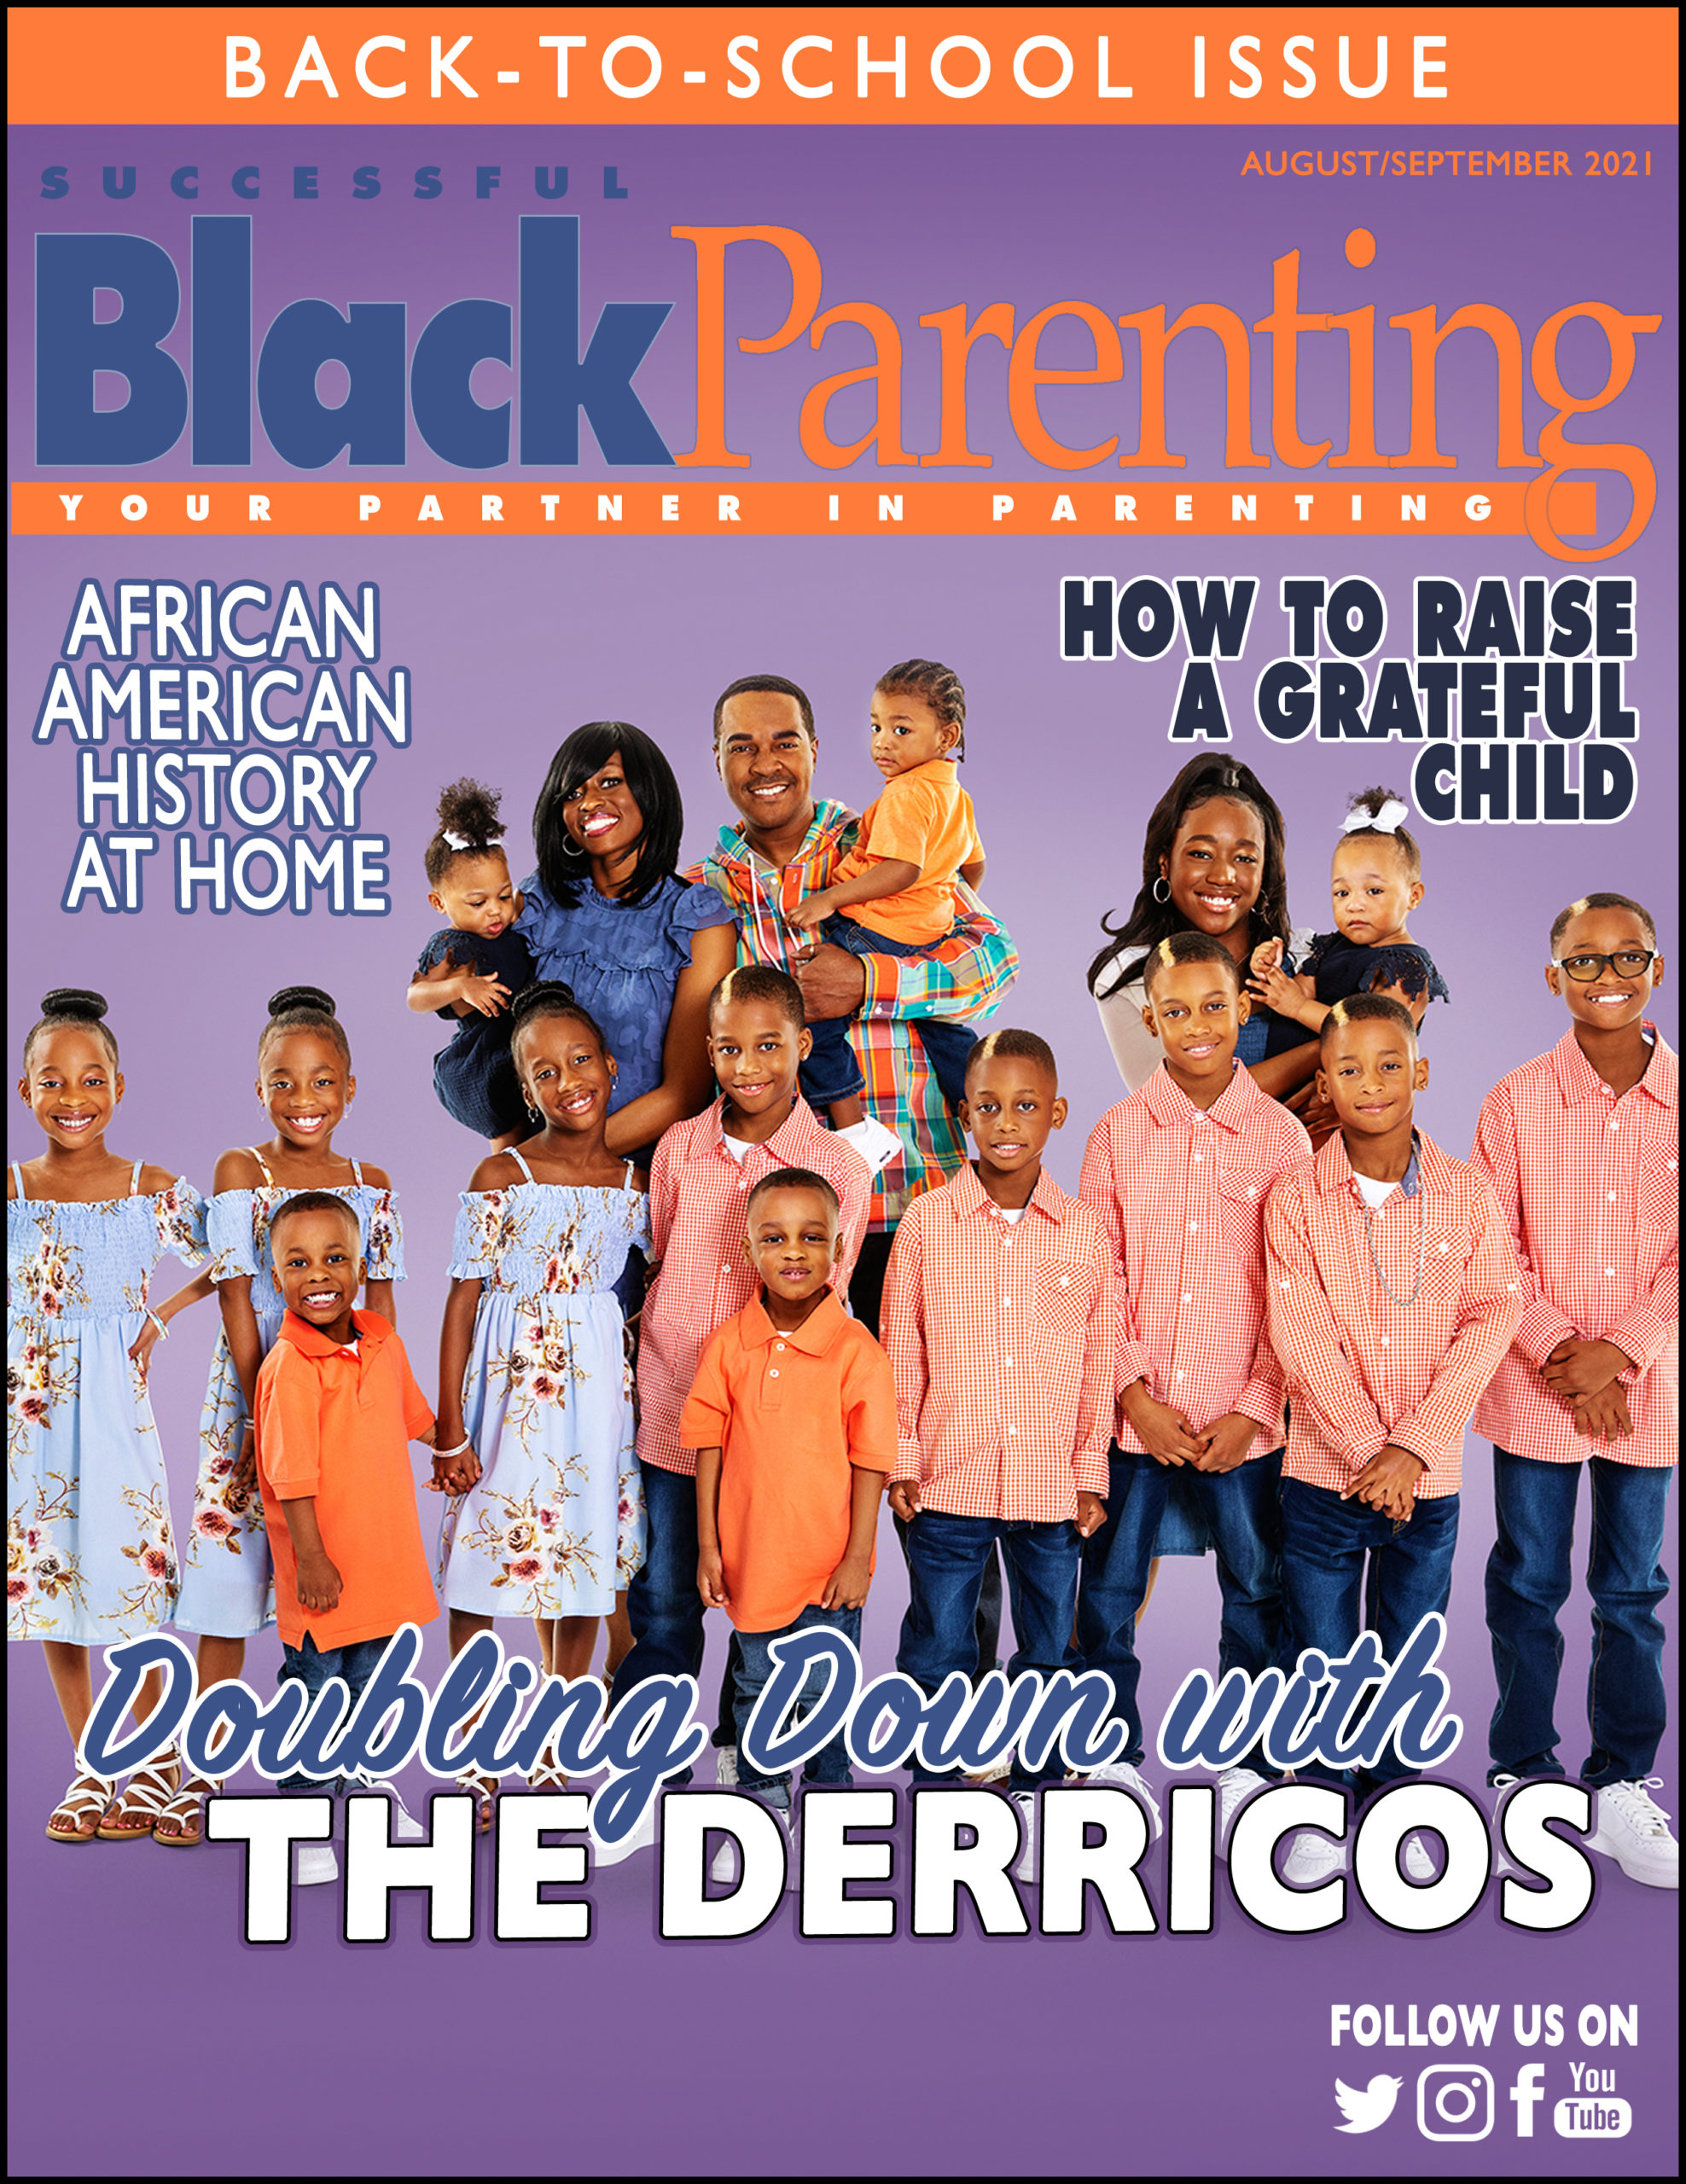 The August September cover for Successful Black Parenting magazine